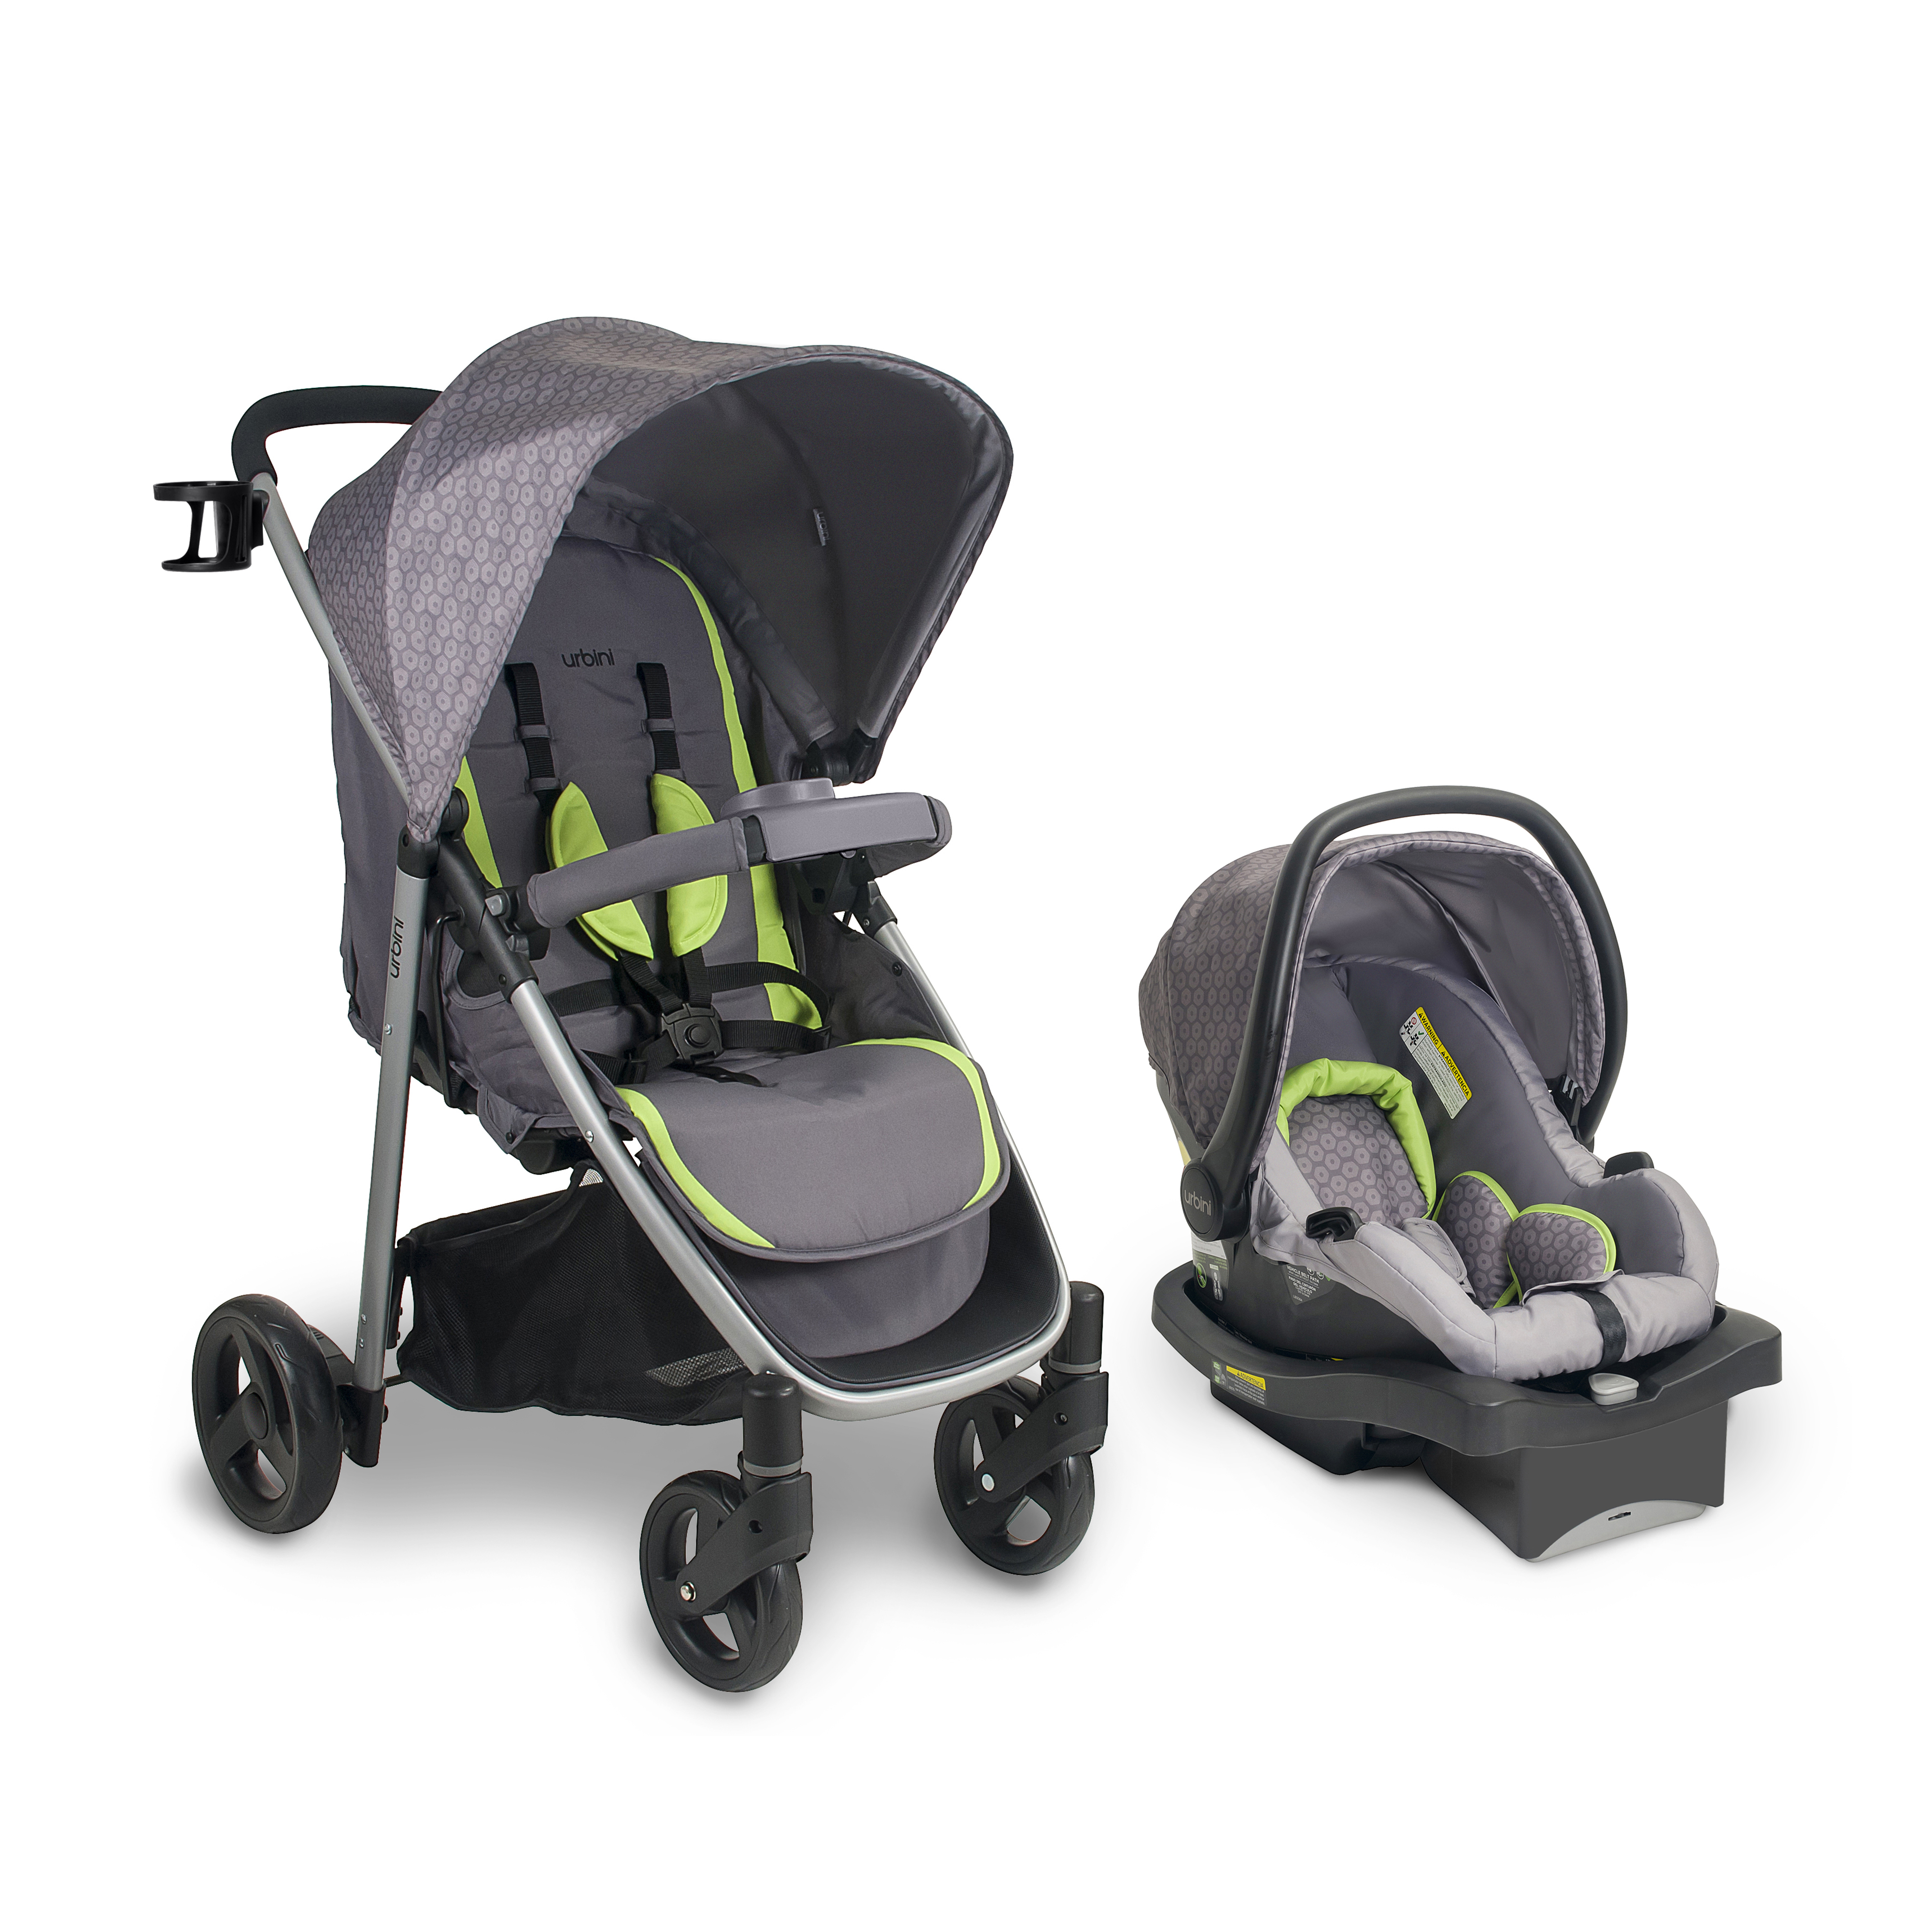 Urbini Turni 3 in 1 Travel System, Clover